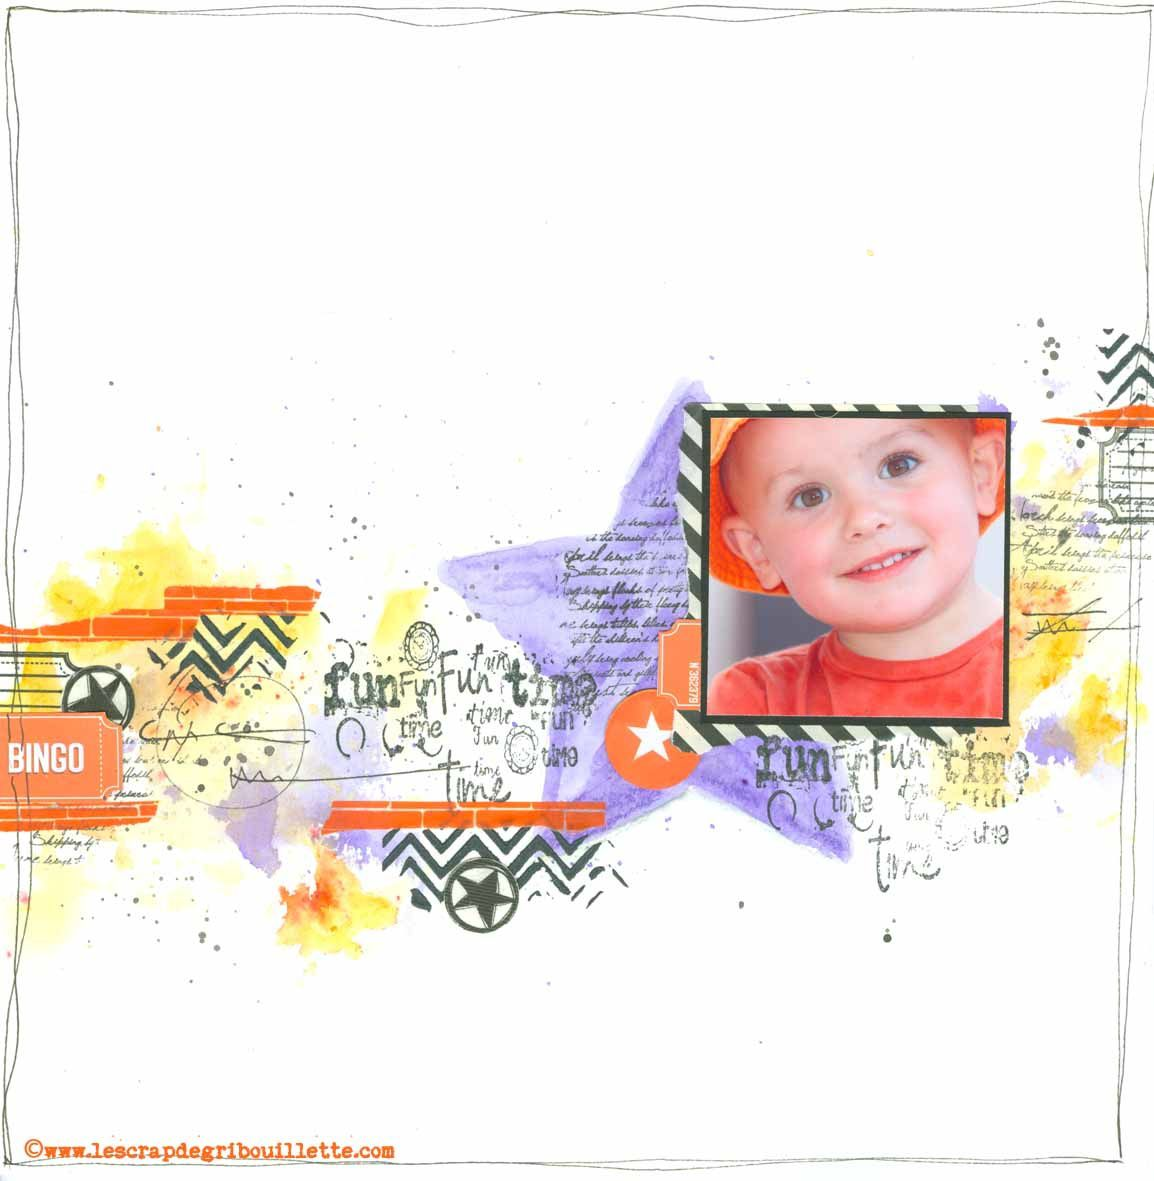 Page de Scrap_Fun time_Combo forum Sagapo Scrap